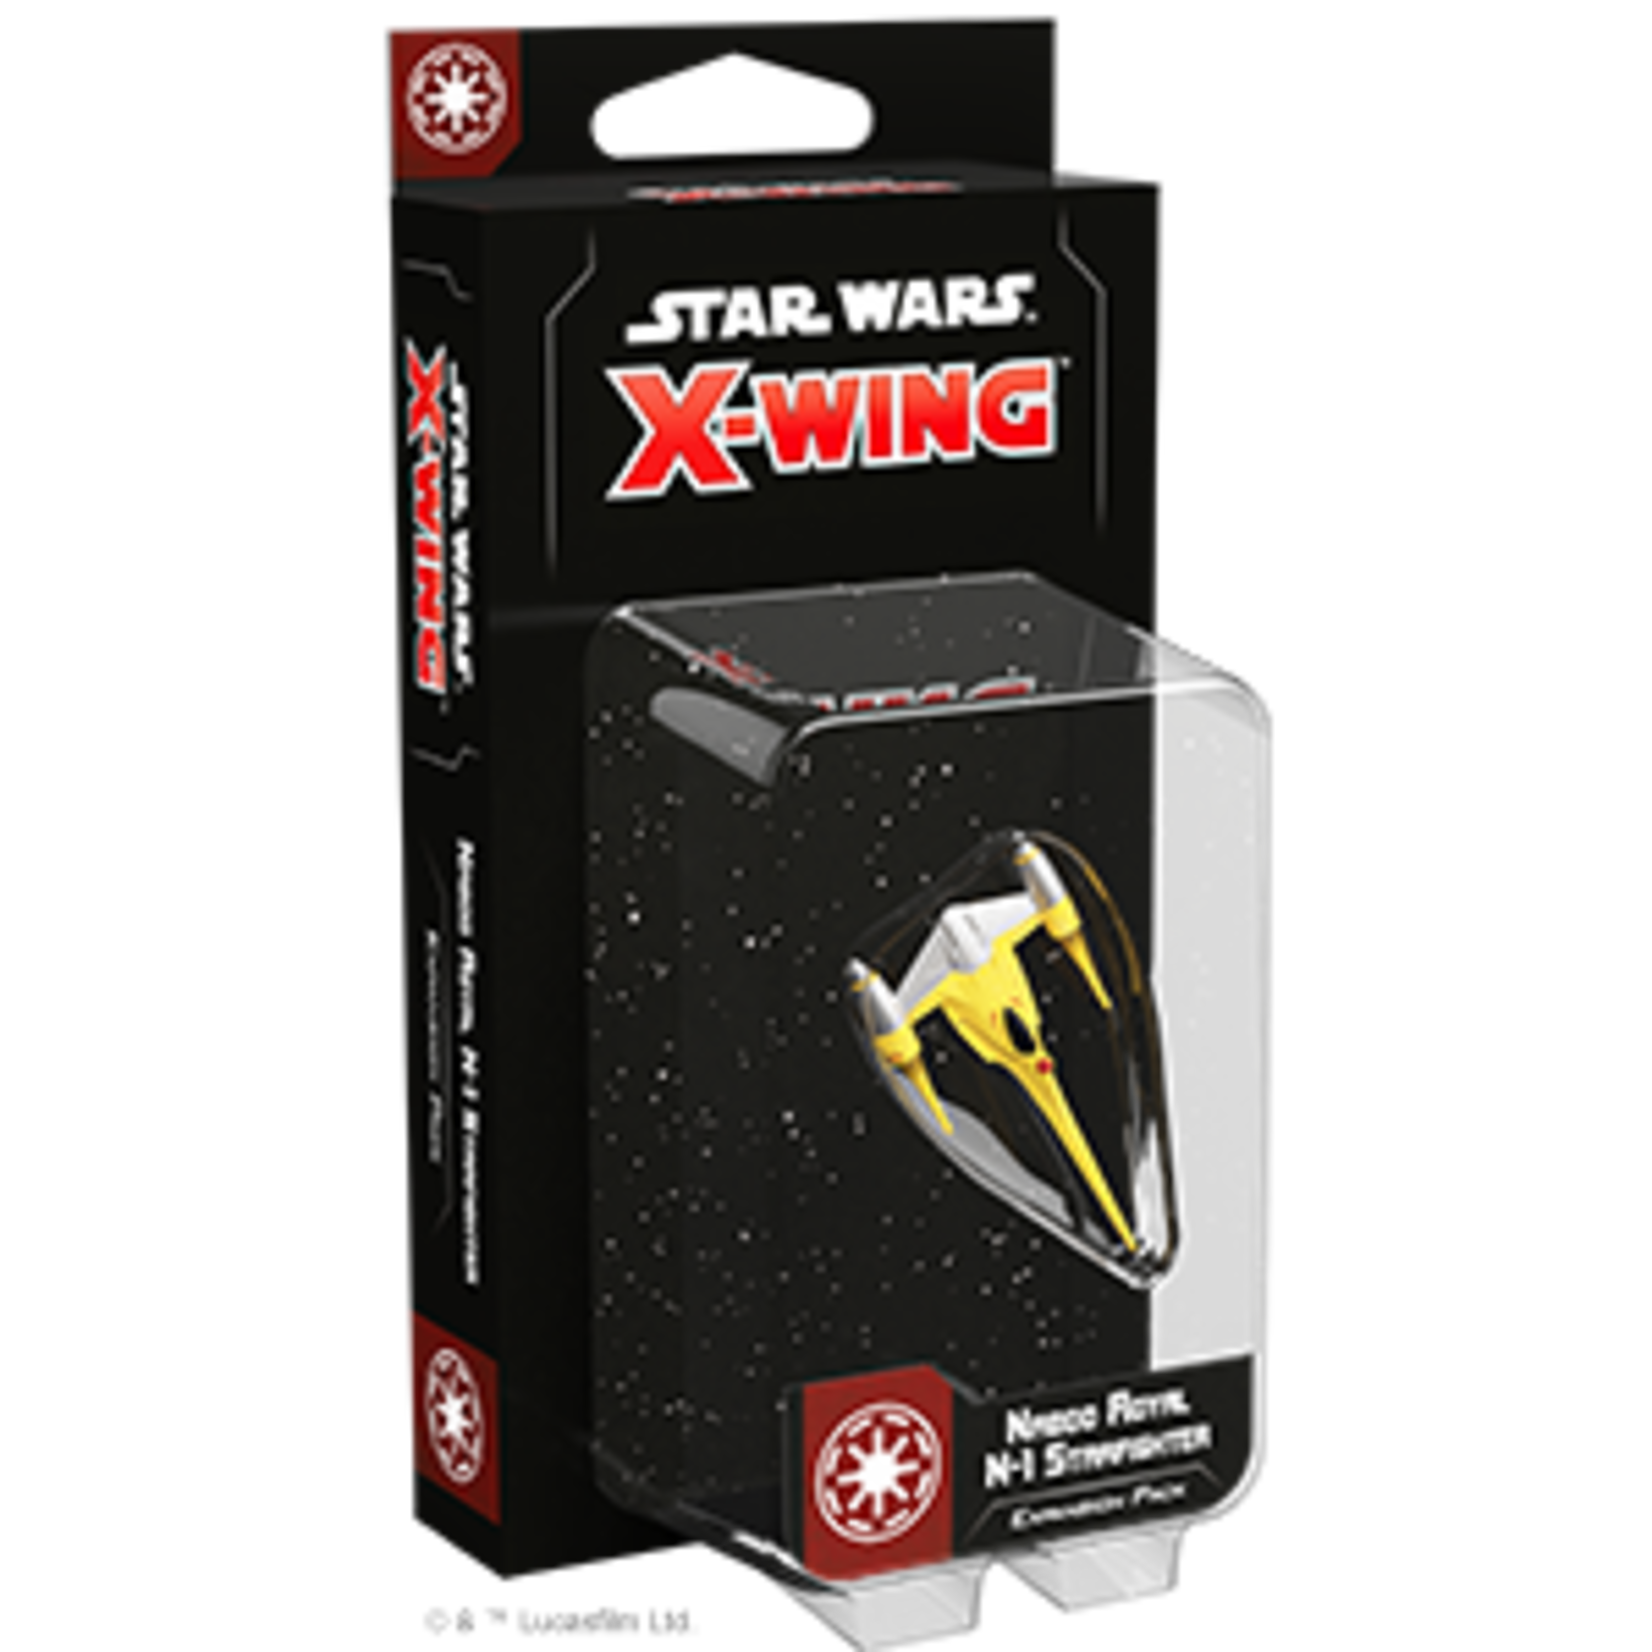 Fantasy Flight Games Star Wars X-Wing 2nd Edition: Naboo Royal N-1 Expansion Pack